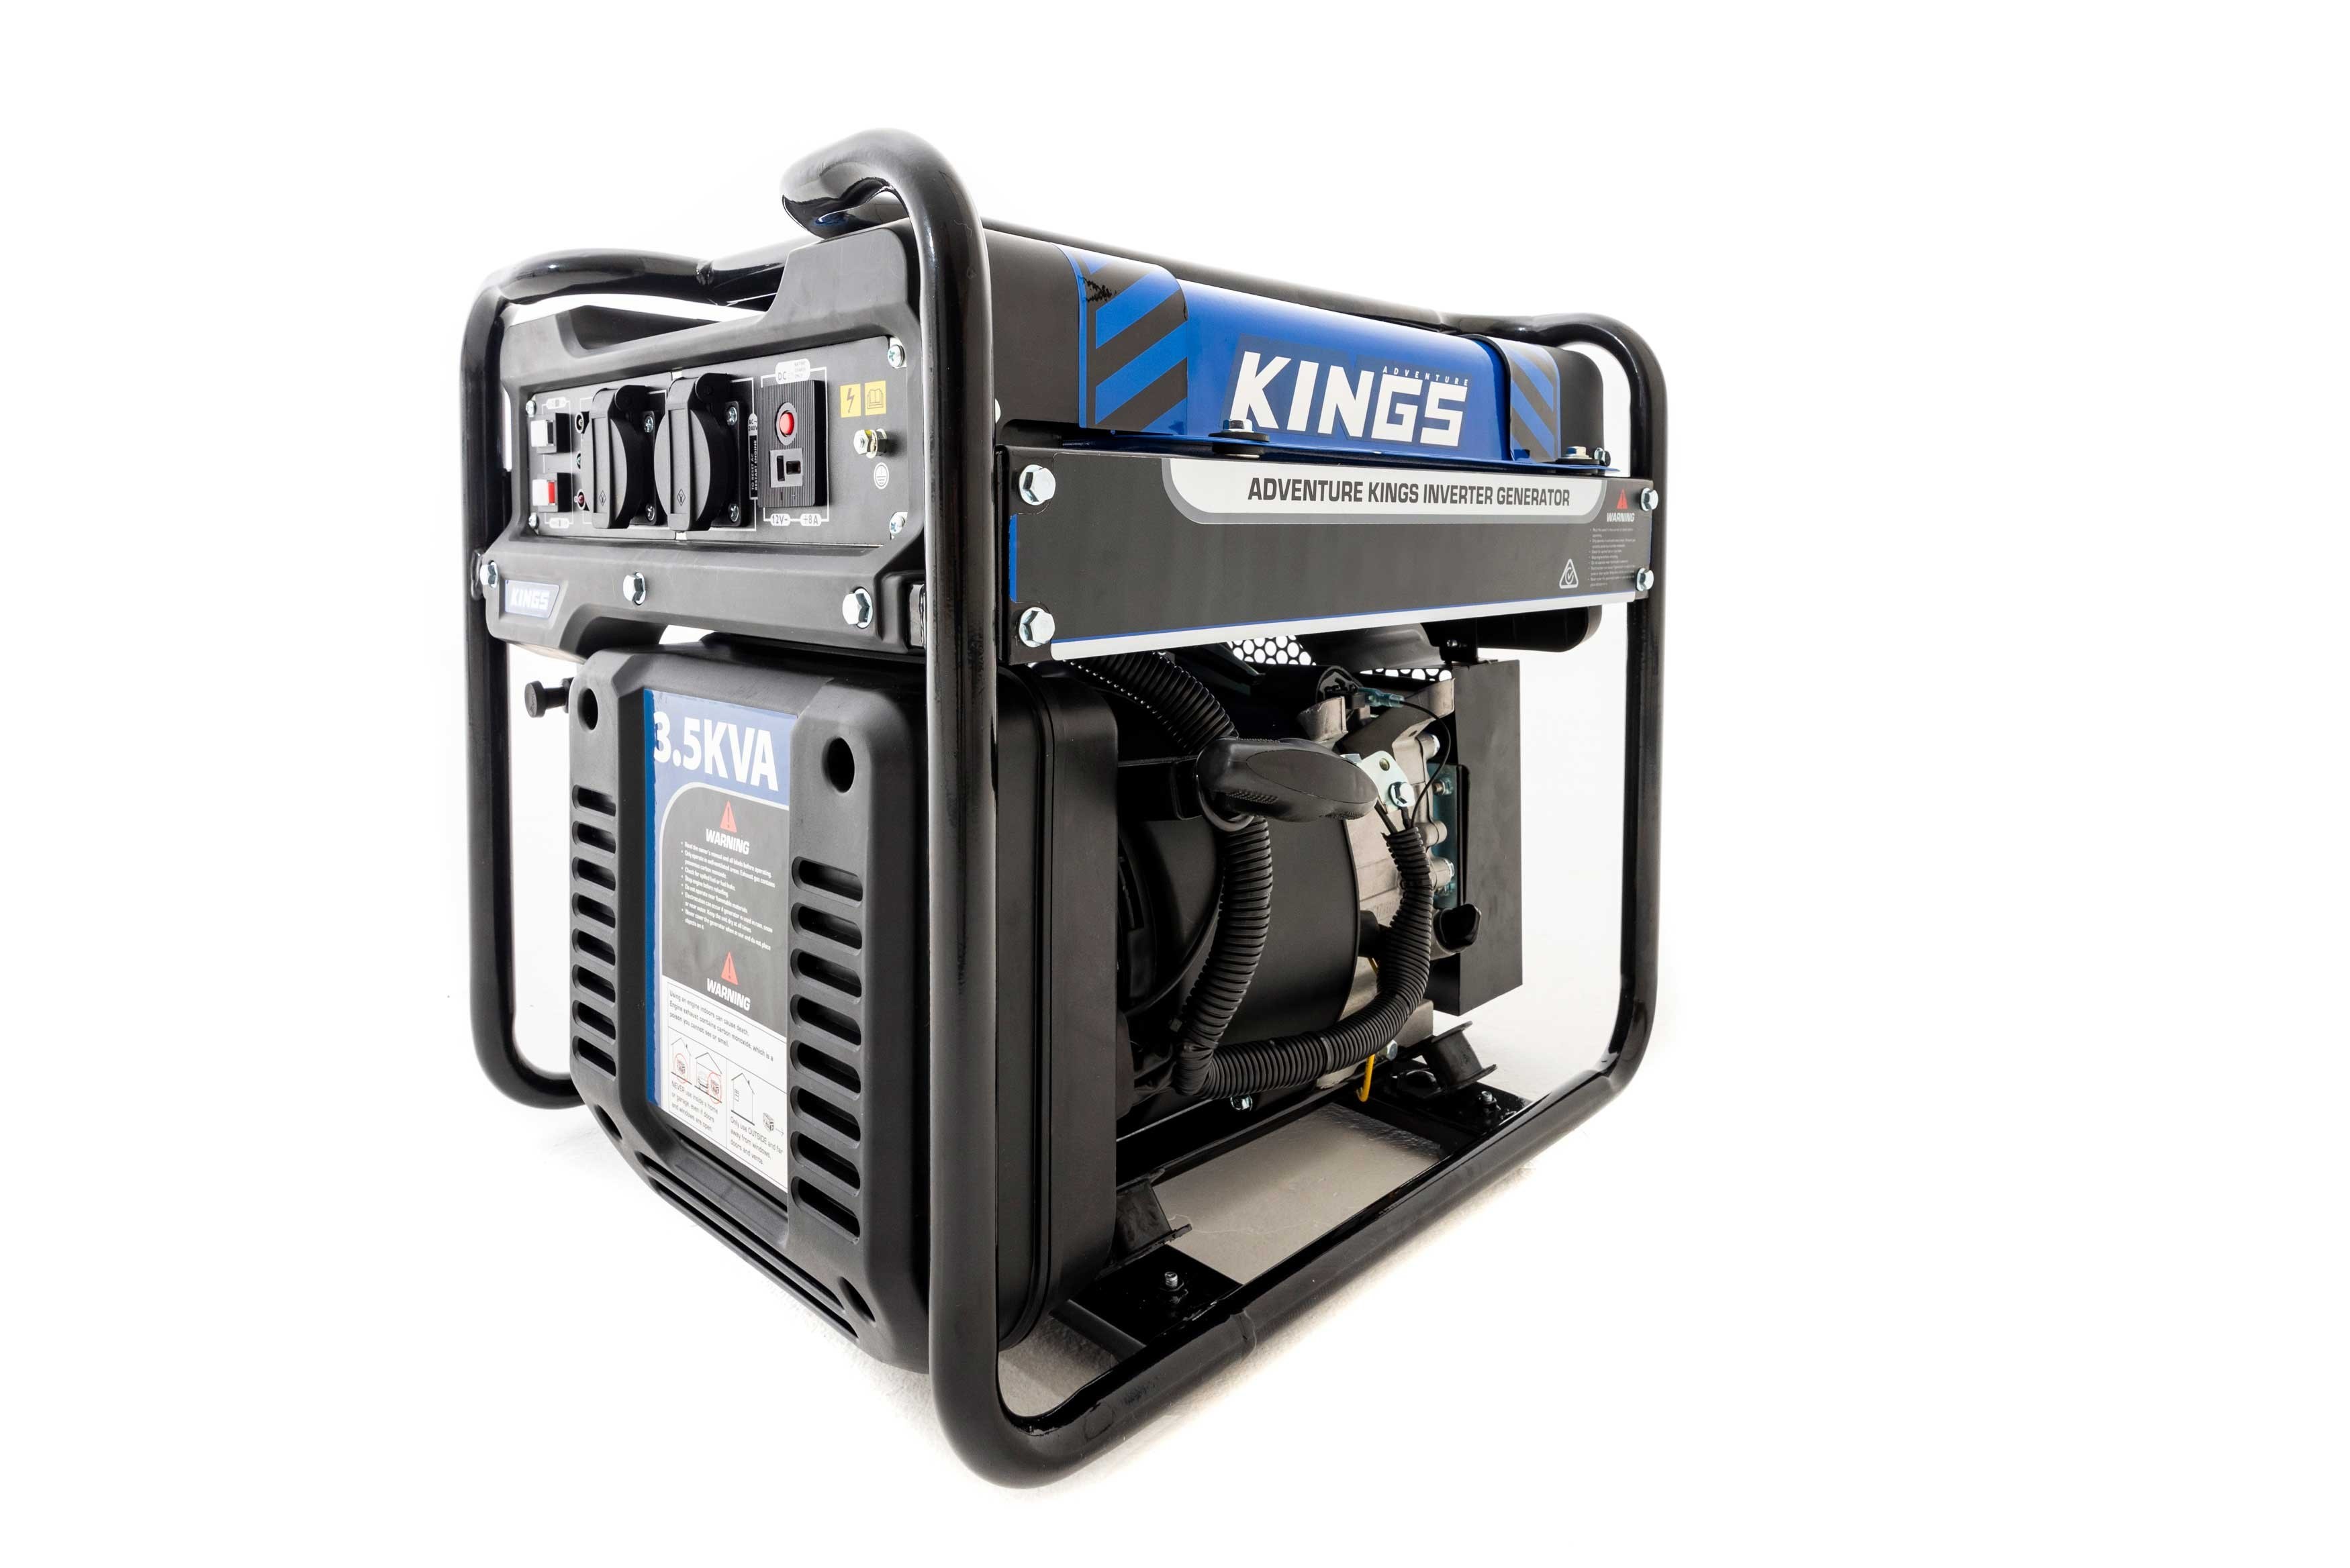 Find the right generator for your setup! - image 180709-3kva-generator-resized-_14-of-25_ on https://www.4wdsupacentre.com.au/news